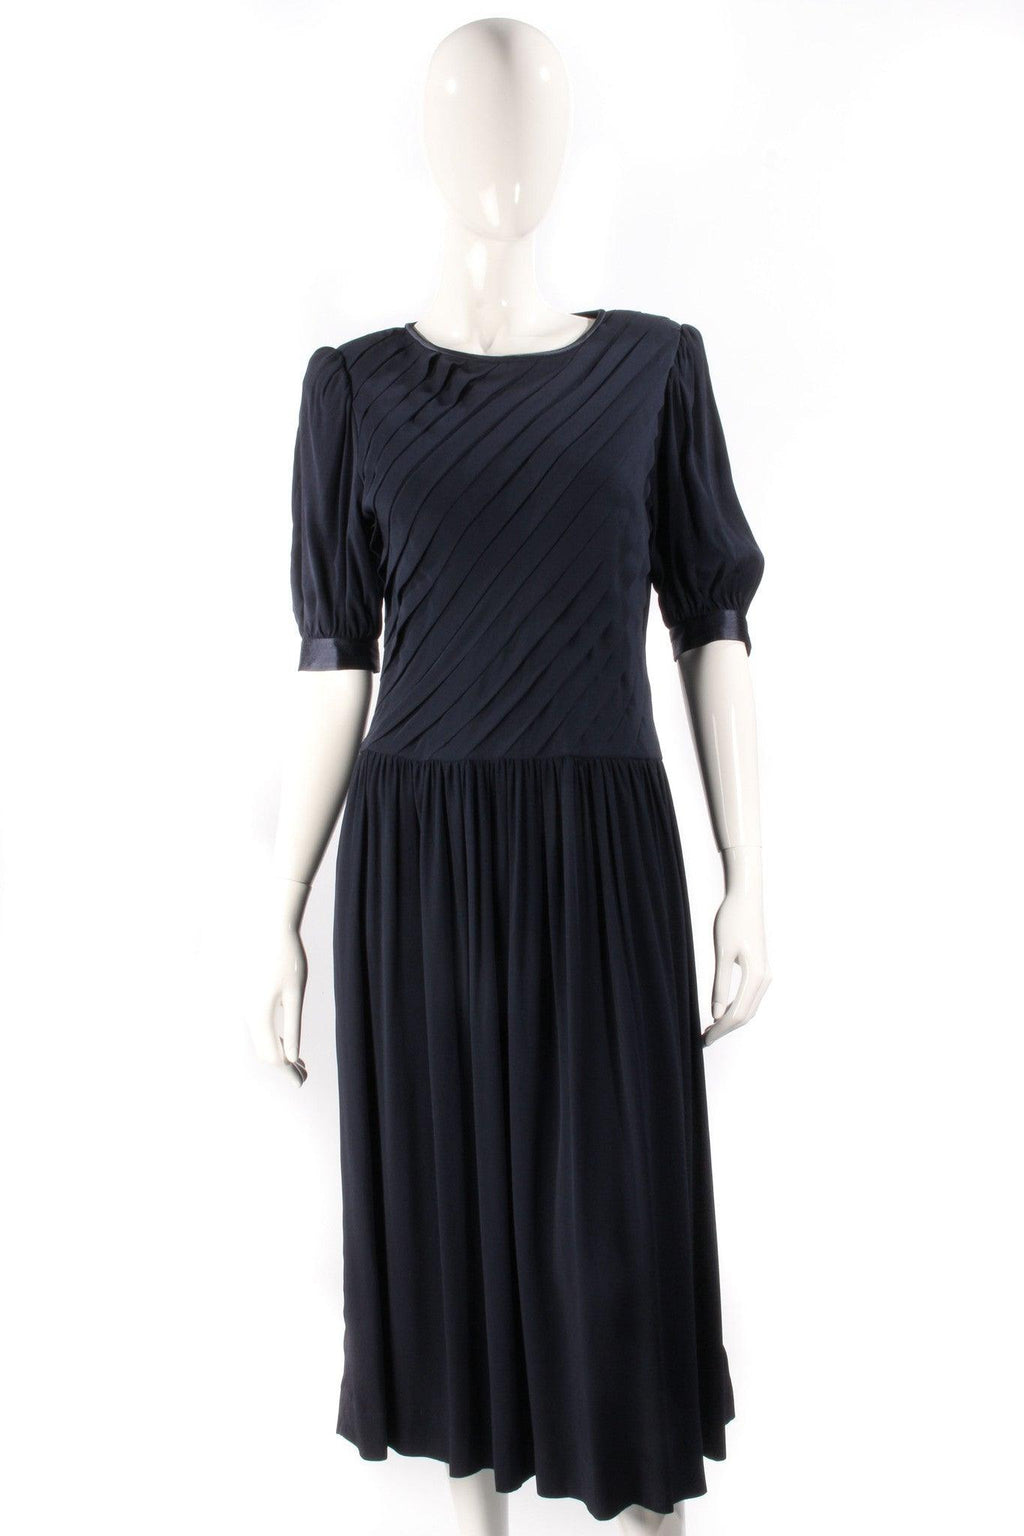 Albert Nipon Boutique Vintage Full Length Dress Navy Blue Size 12